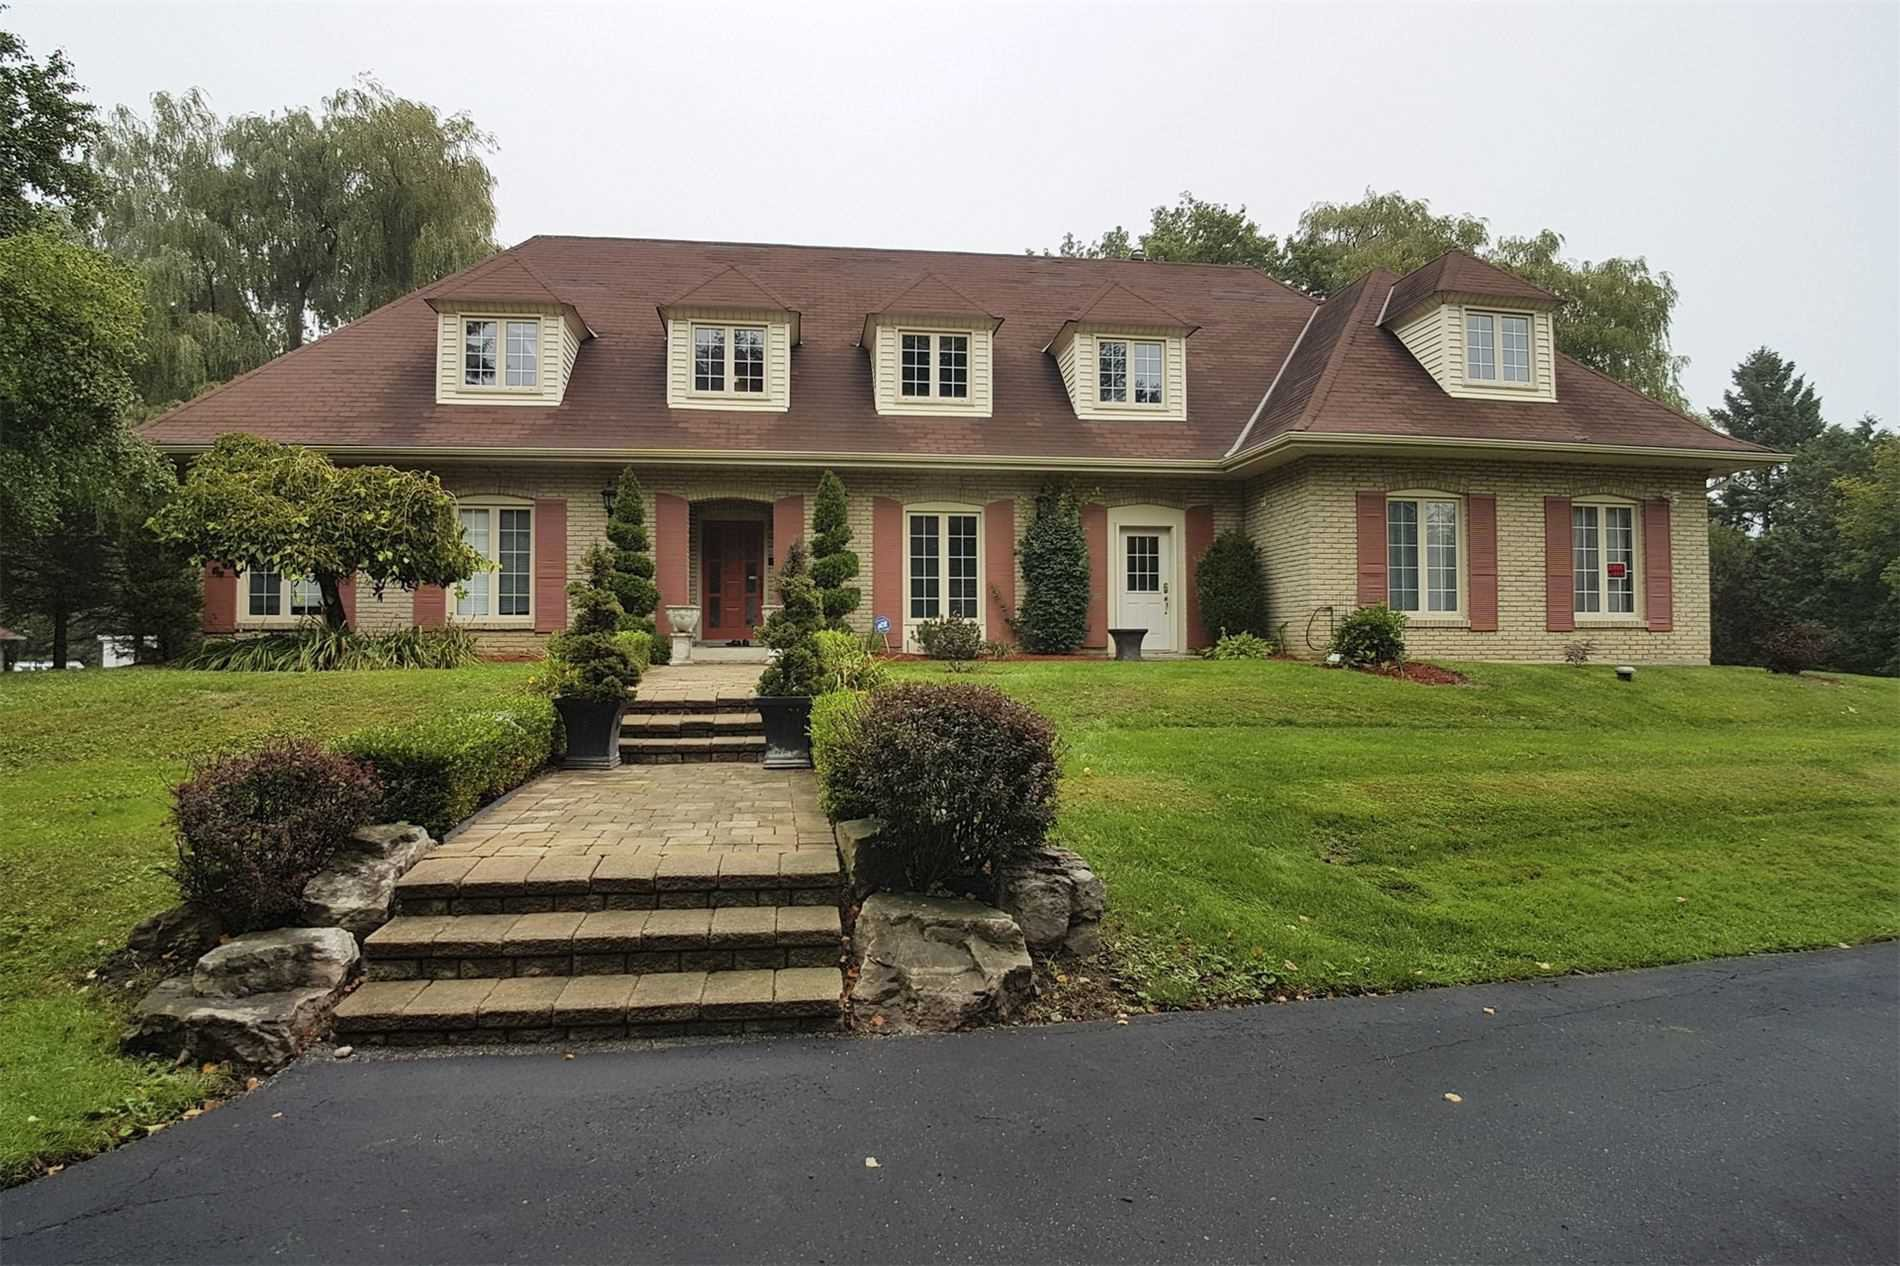 Main Photo: 4 Steeplechase Ave in Aurora: Aurora Estates Freehold for sale : MLS®# N4894121